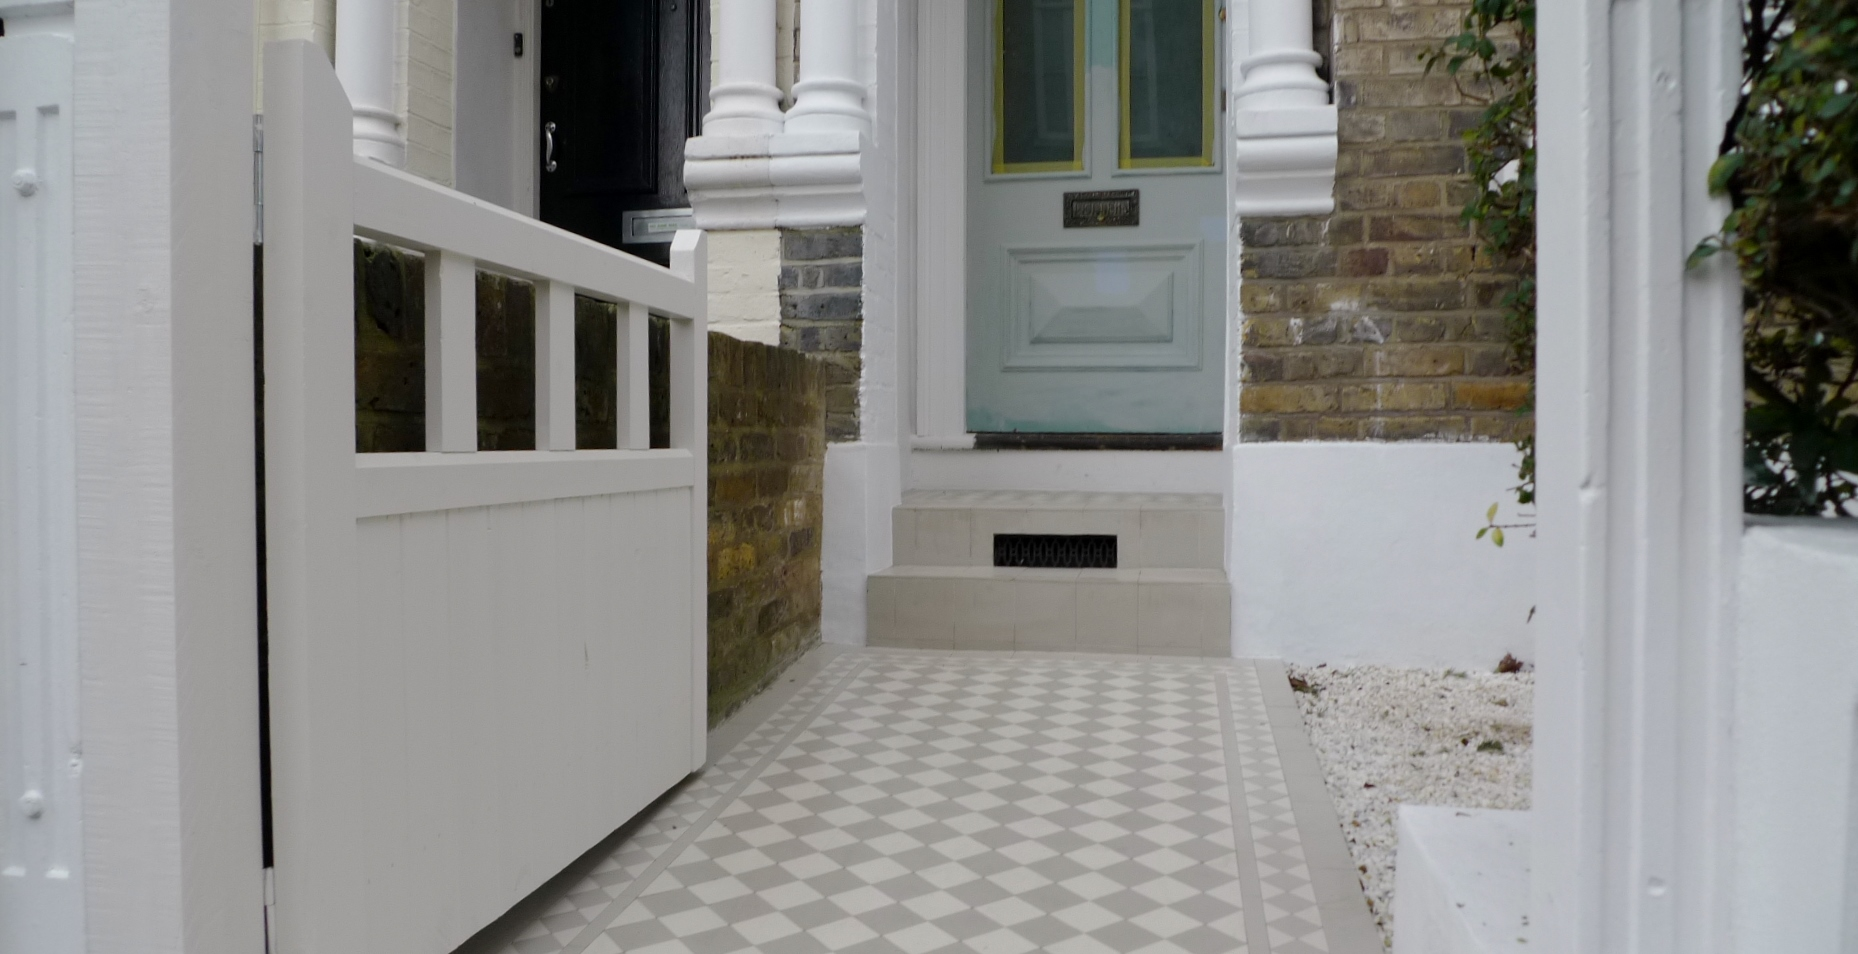 victroian mosaic tile path grey and white design battersea london